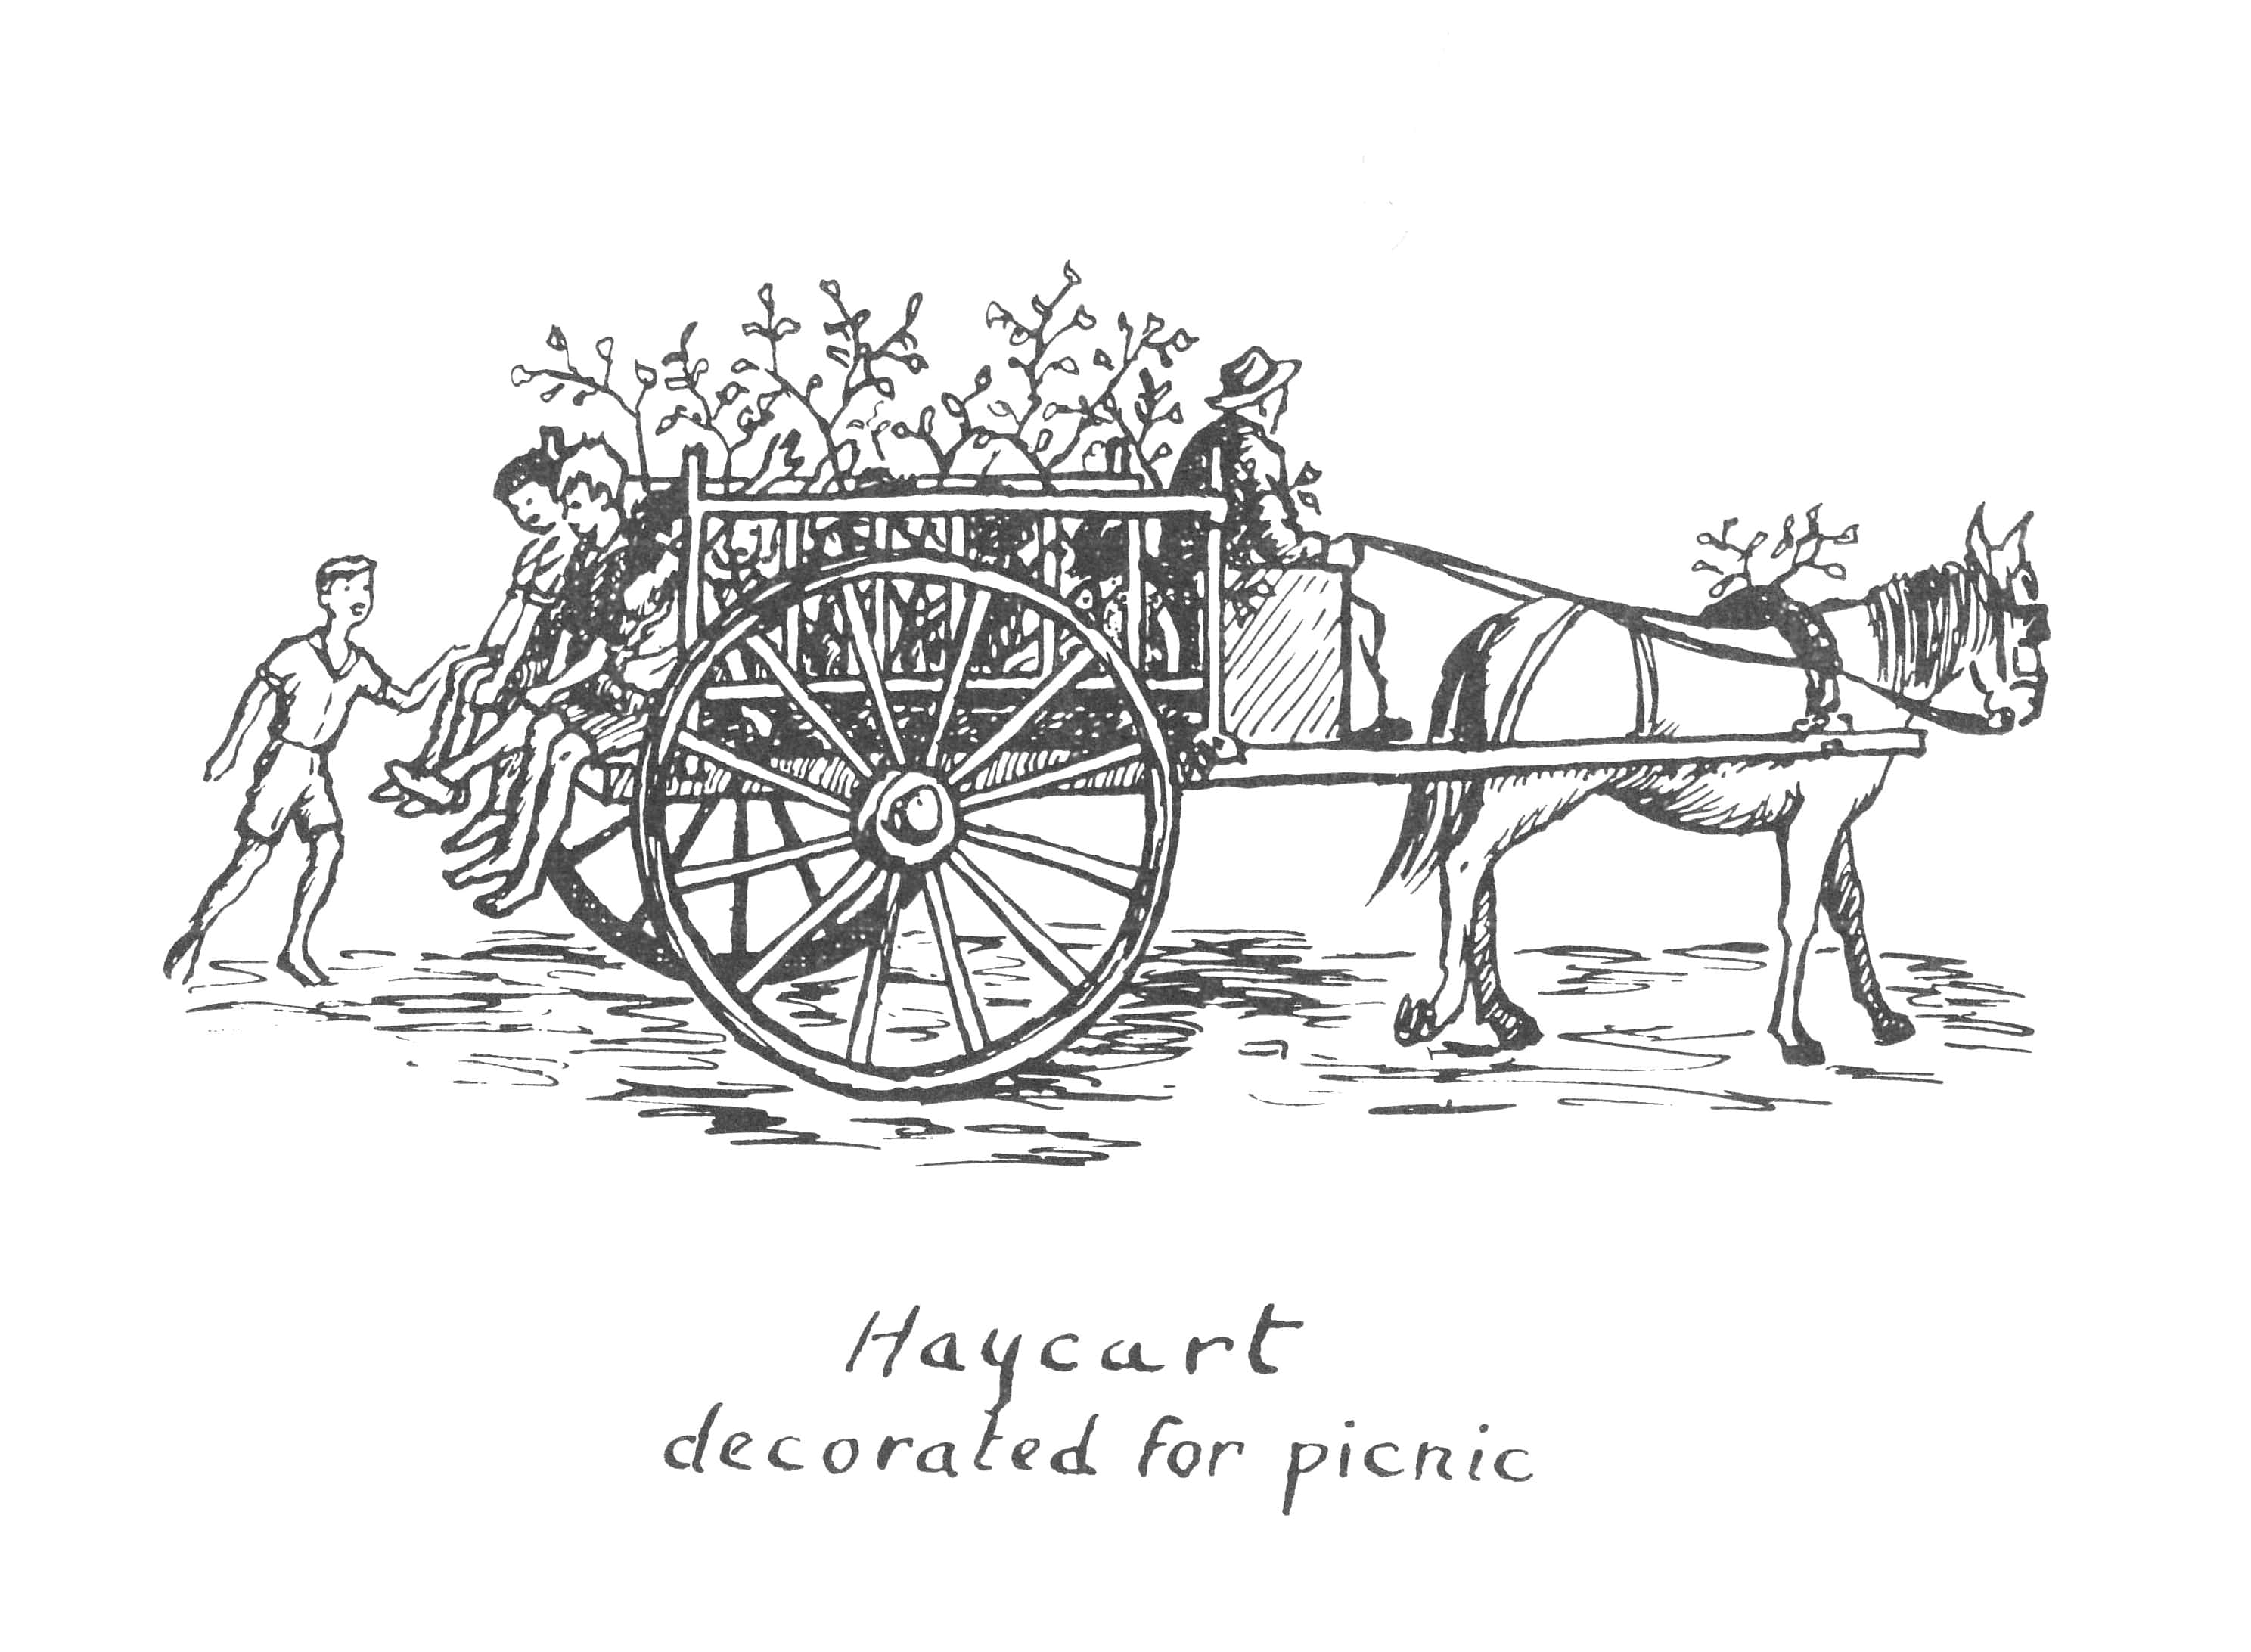 Ink drawing of children riding in a two-wheeled horse cart decorated with branches.